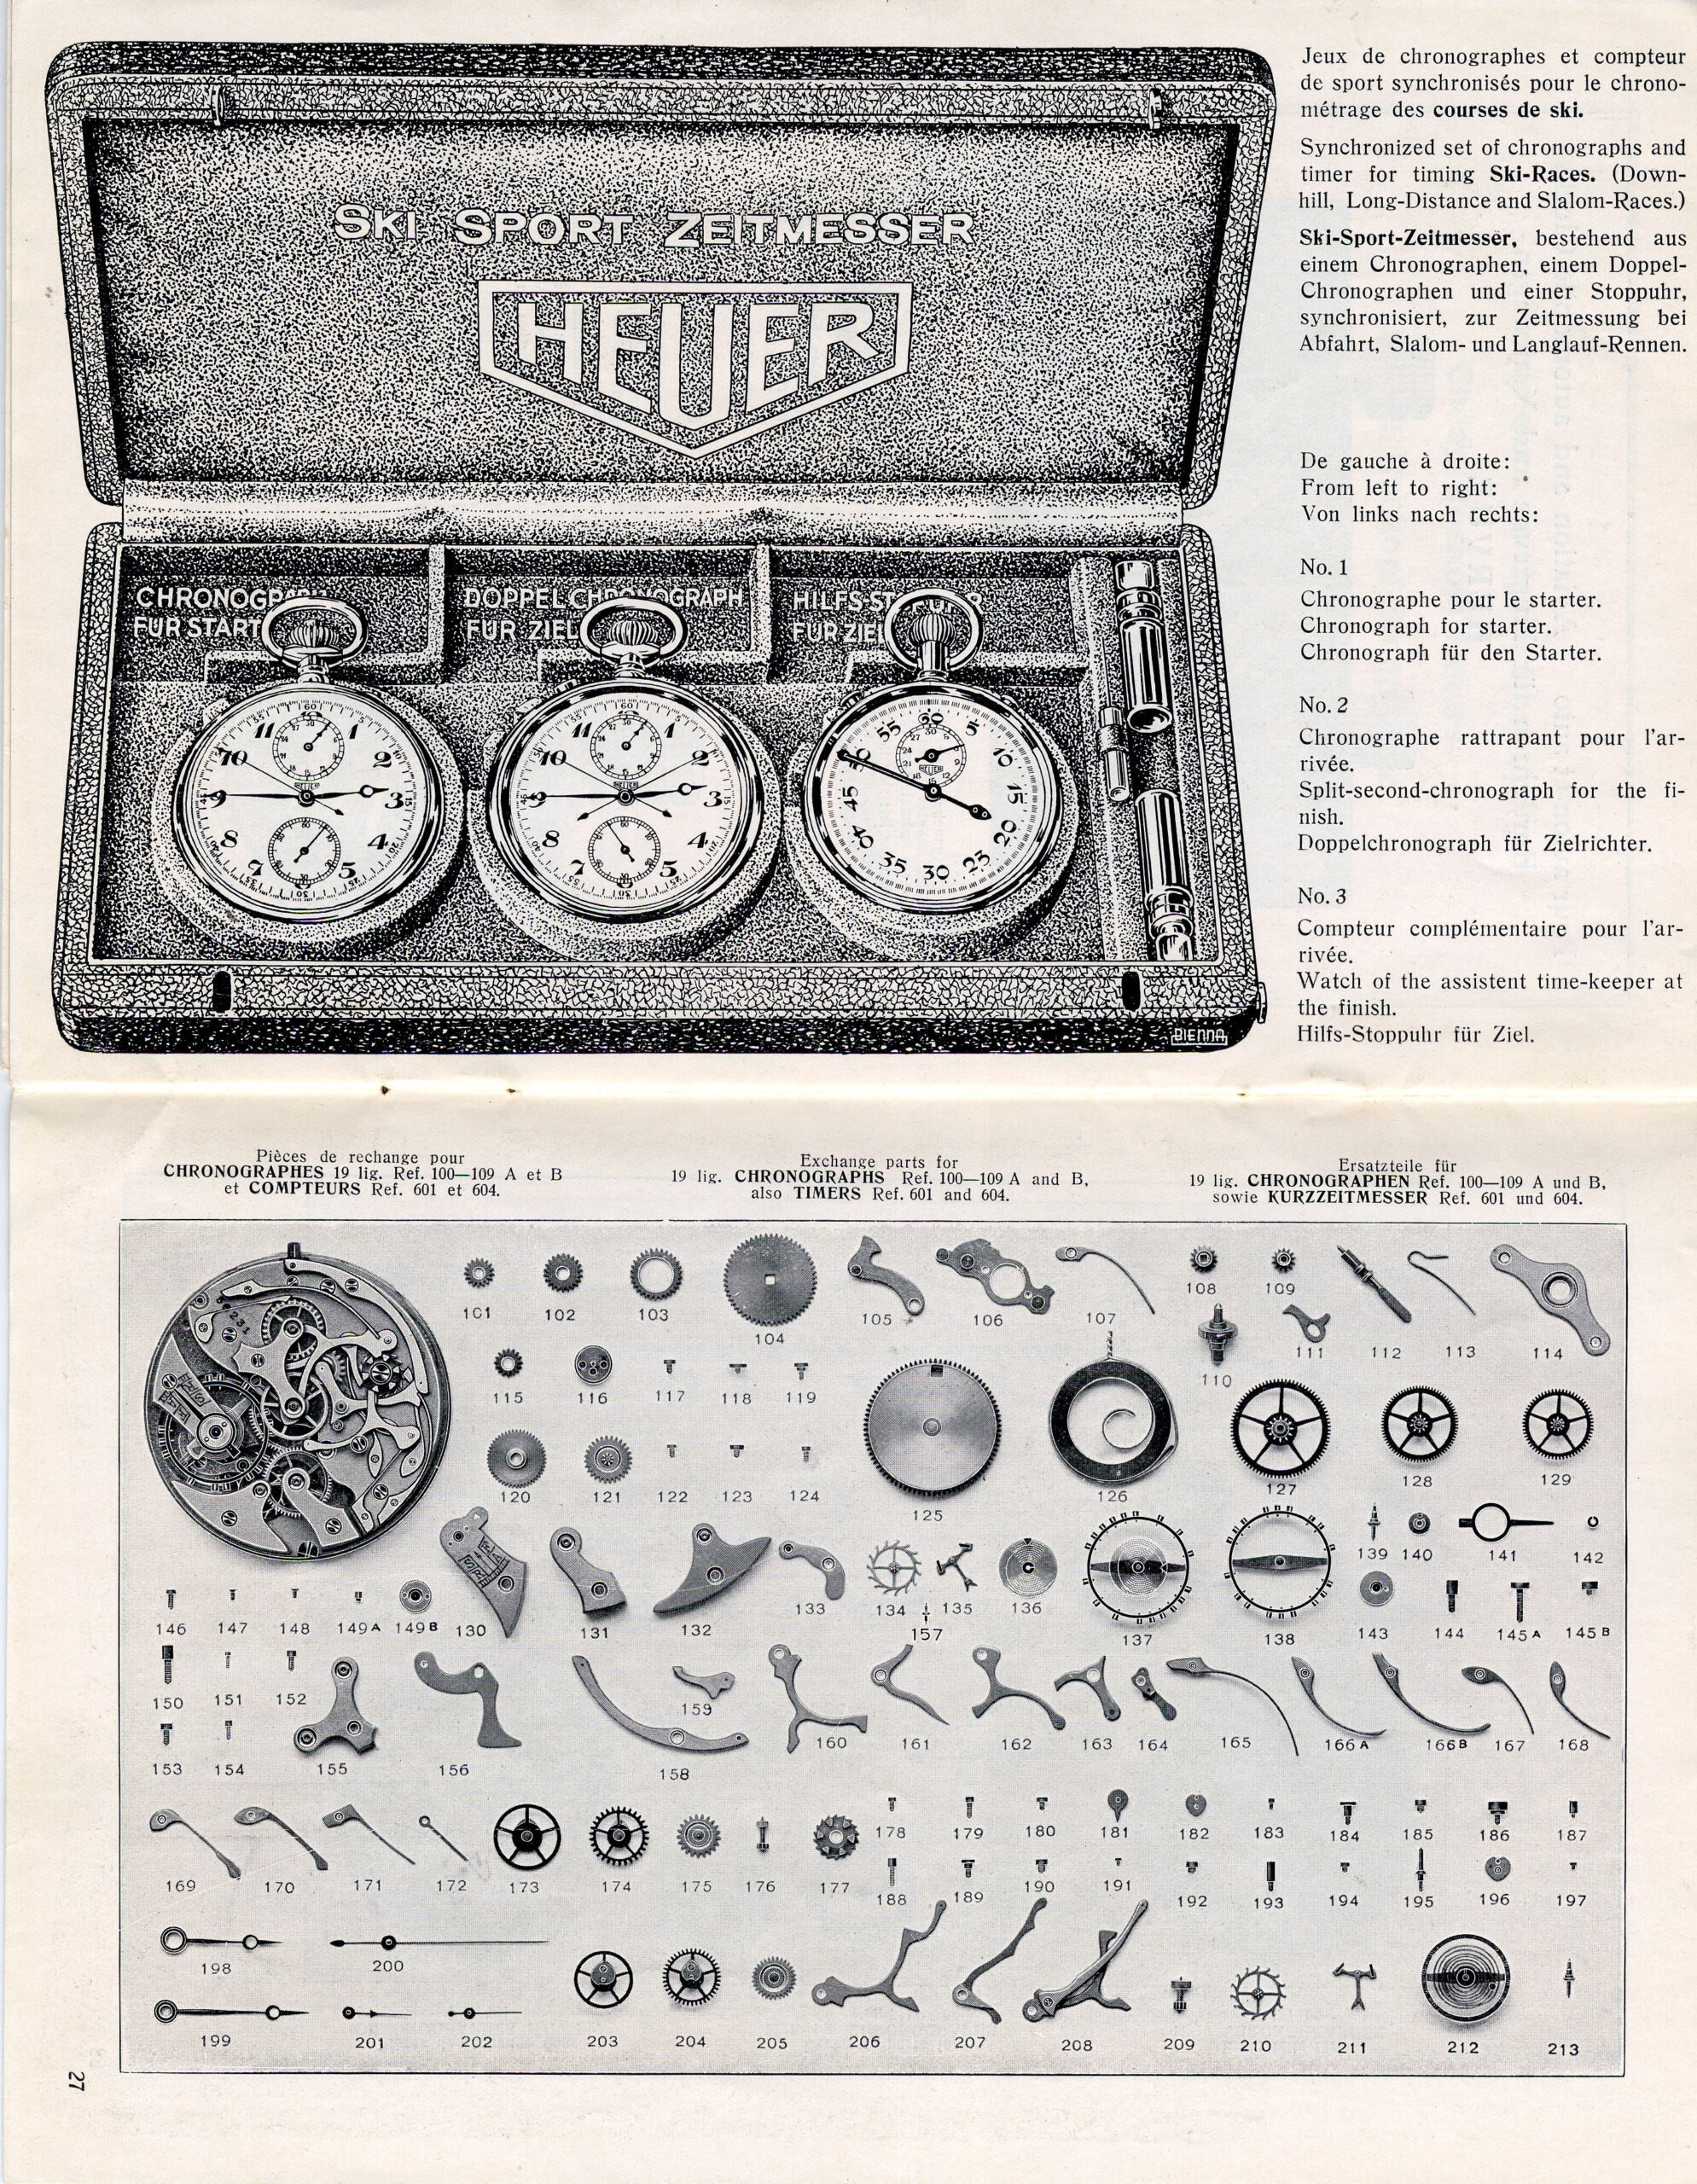 A Heuer catalog from the 1930s